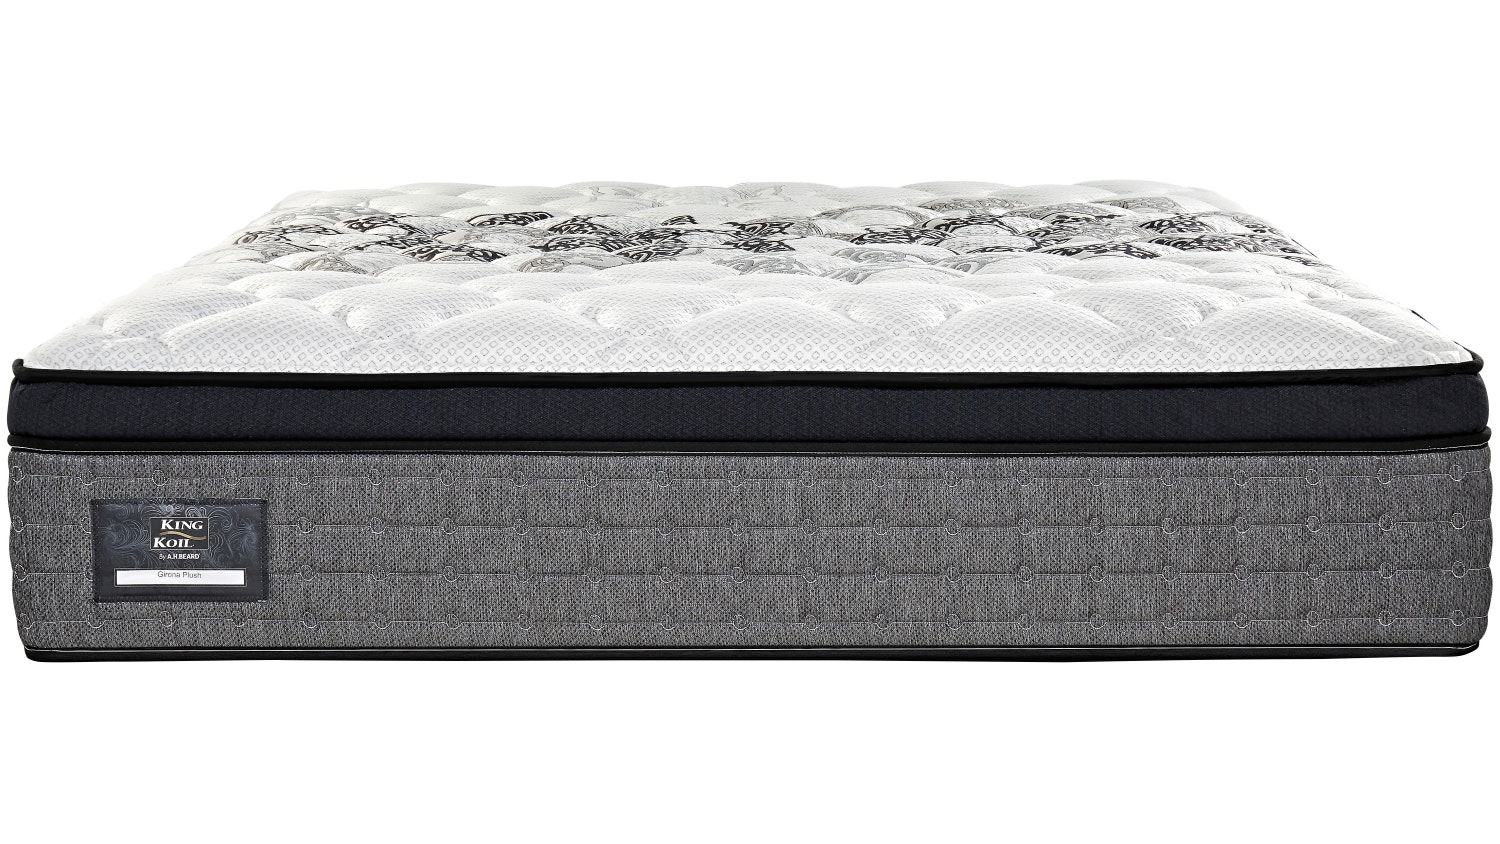 King Koil Girona Plush Mattress